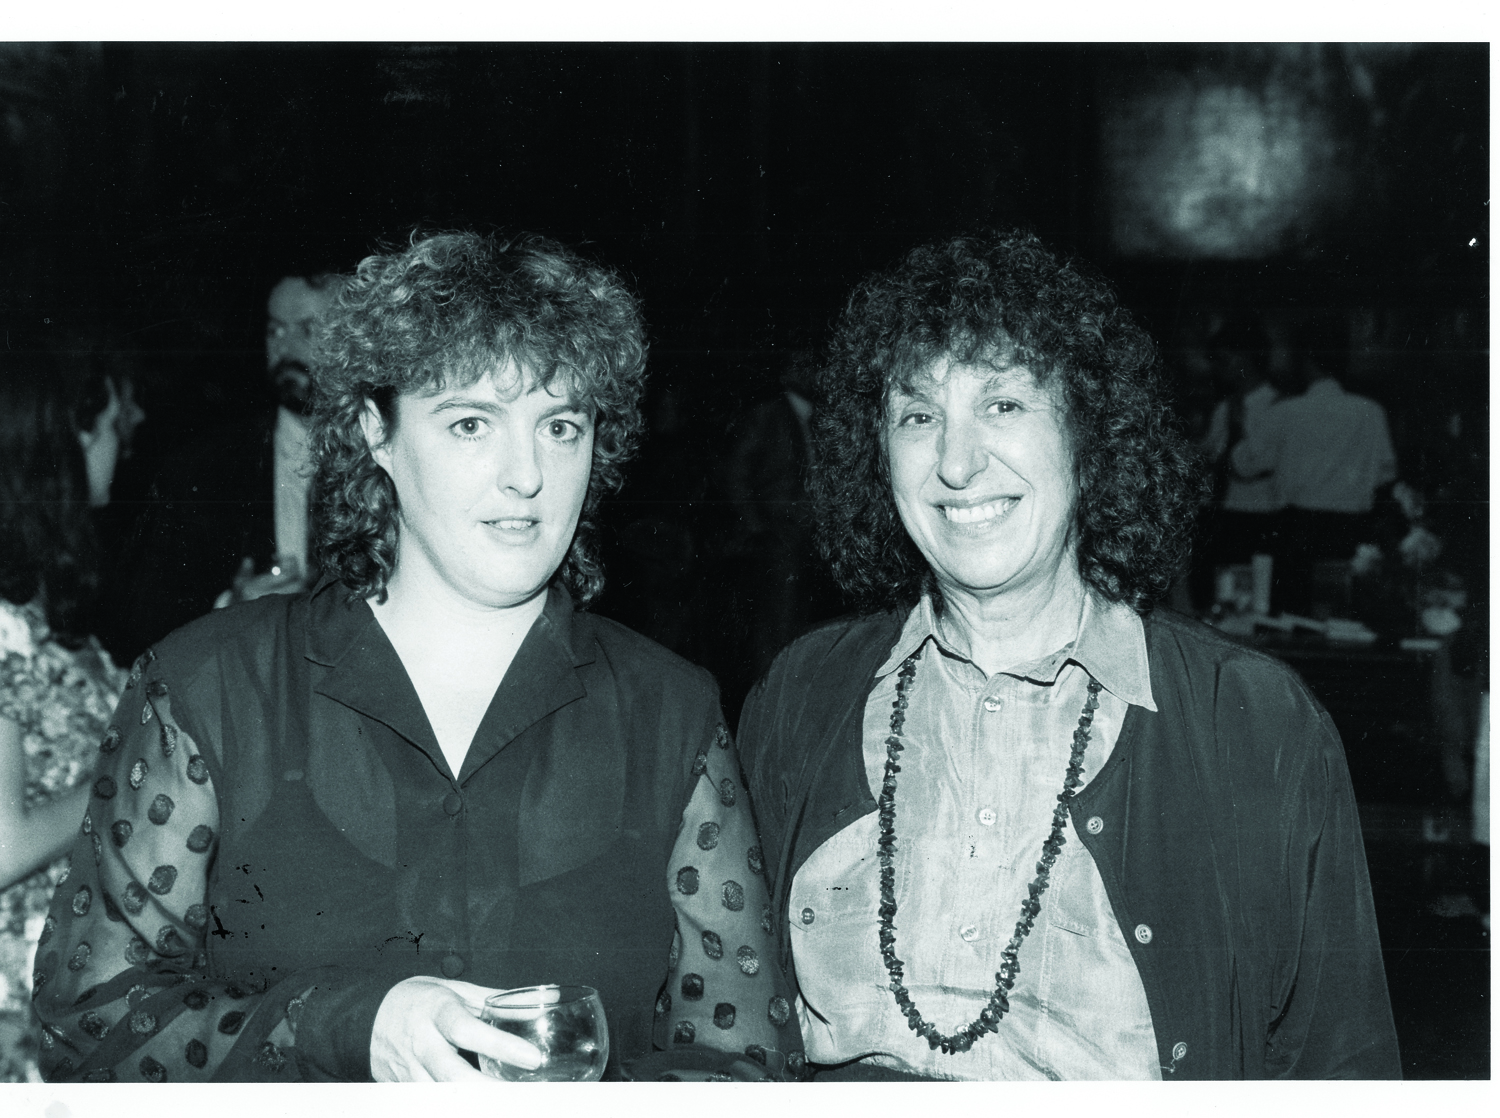 Elaine and her friend the poet Carol Ann Duffy me his Trinity rooms for my birthday party. Courtesy of Elaine Feinstein